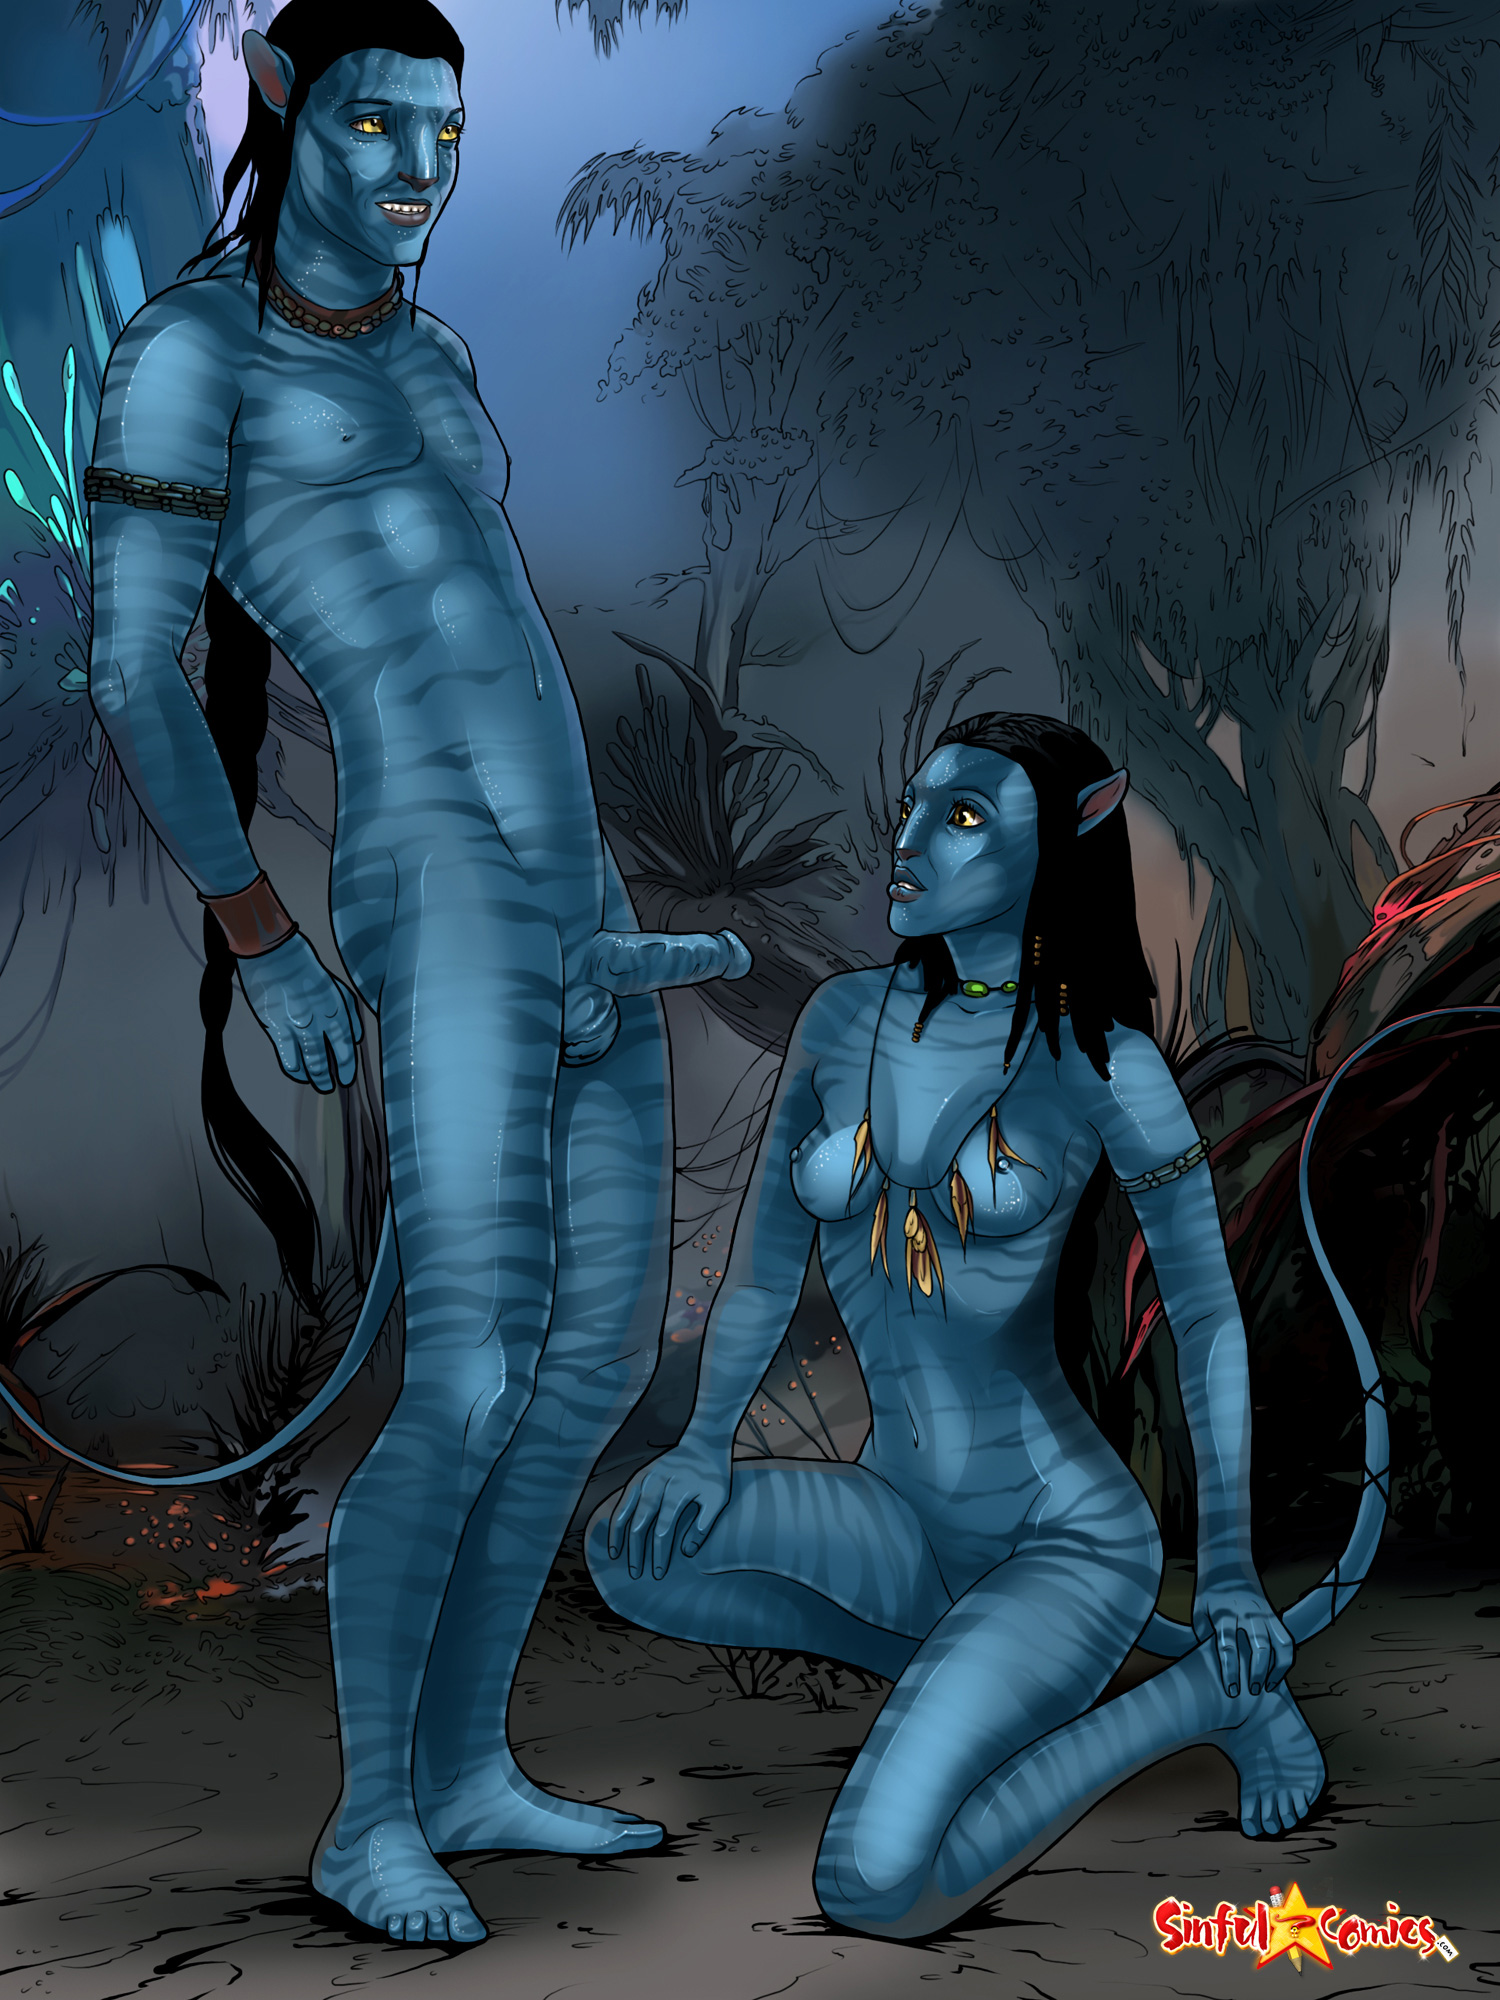 Avatar fuck movies sex pictures